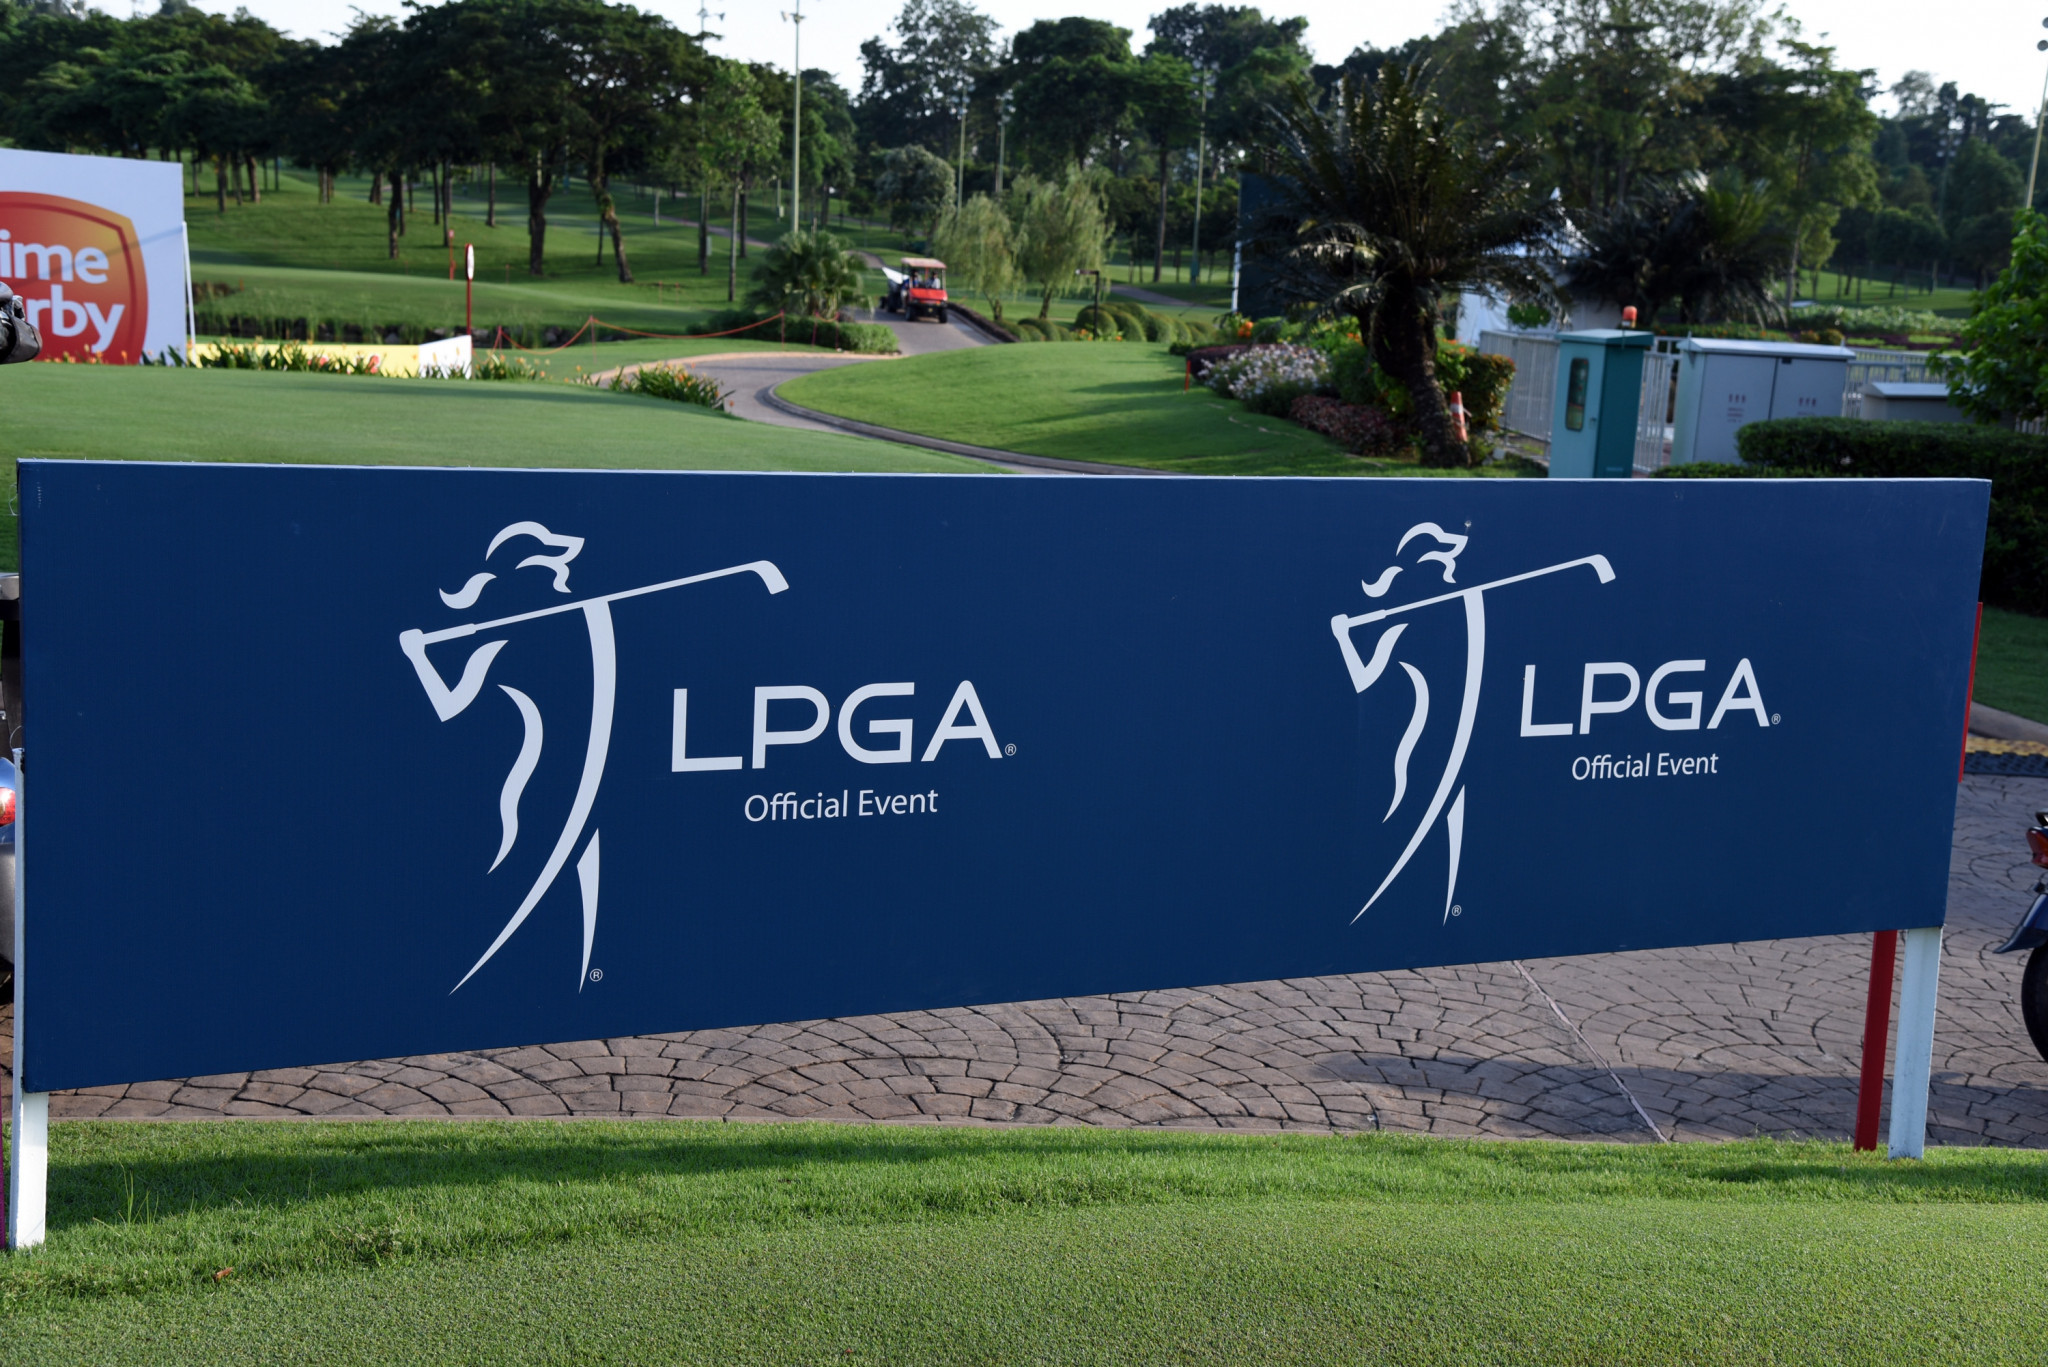 LPGA Tour announces Eurofins as official testing partner